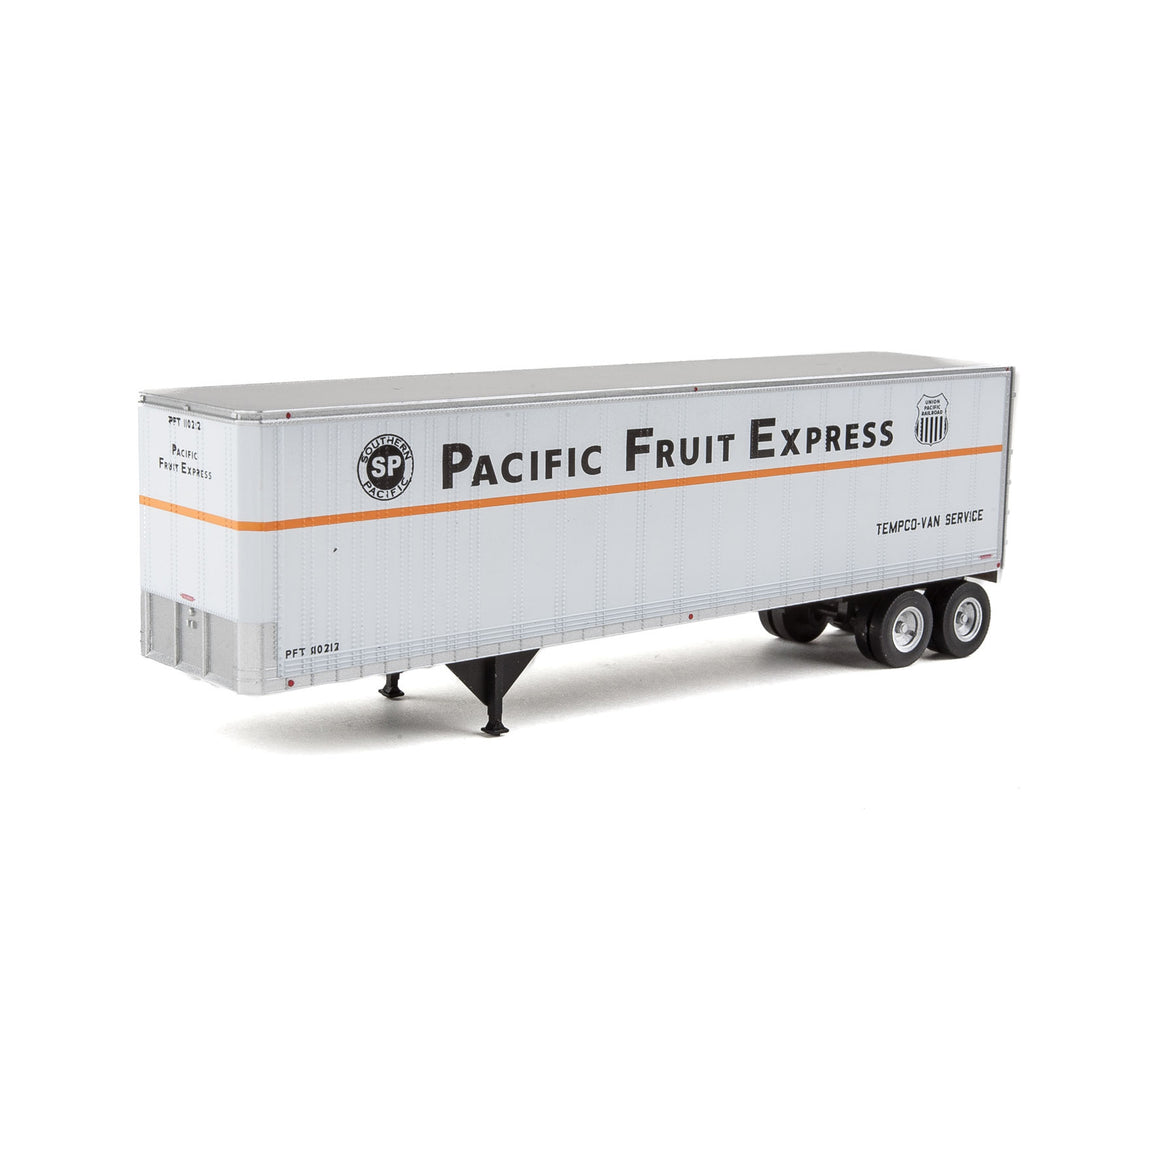 HO Scale: 40' Trailmobile Trailer - Pacific Fruit Express - 2-Pack